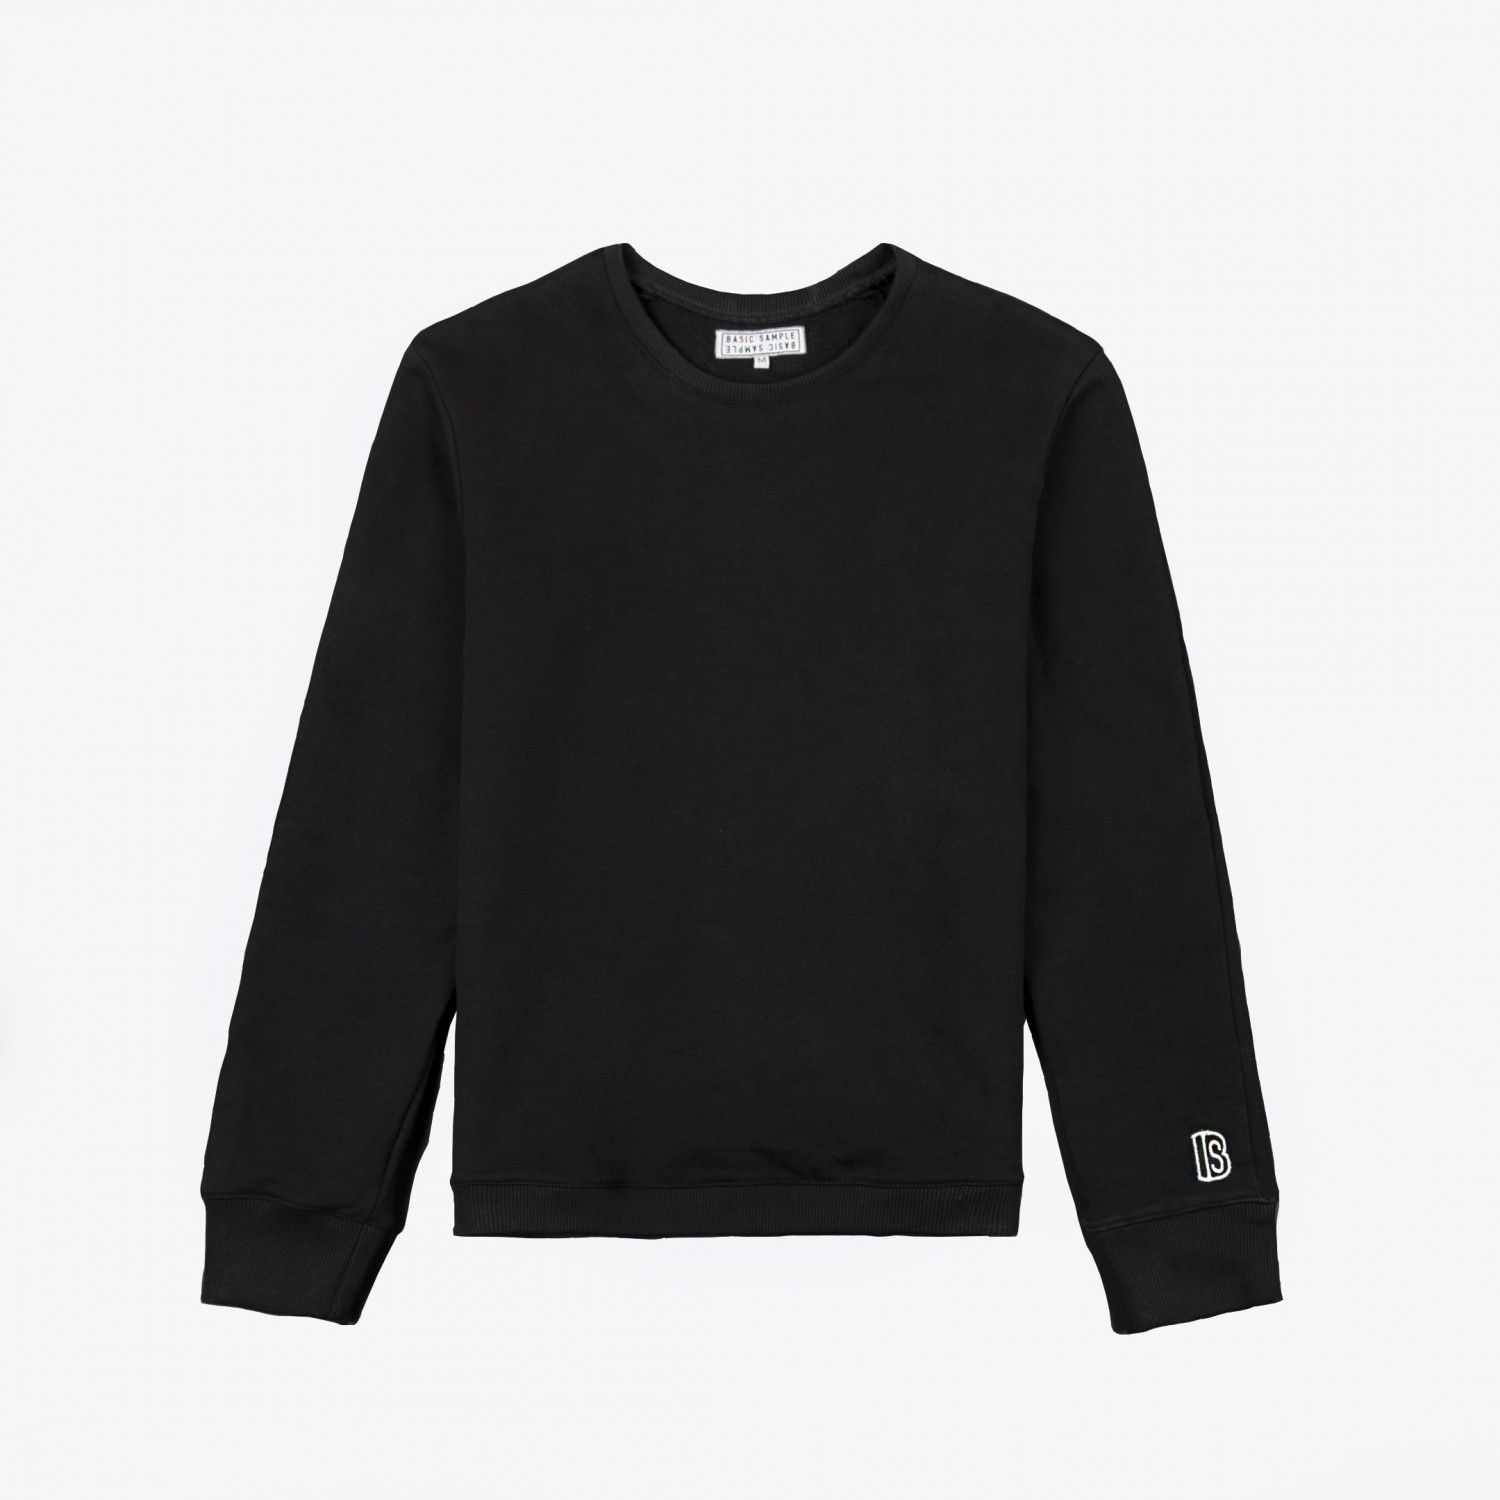 "Свитшот Basic Sample - Sweatshirt Black ""Techgirl"""